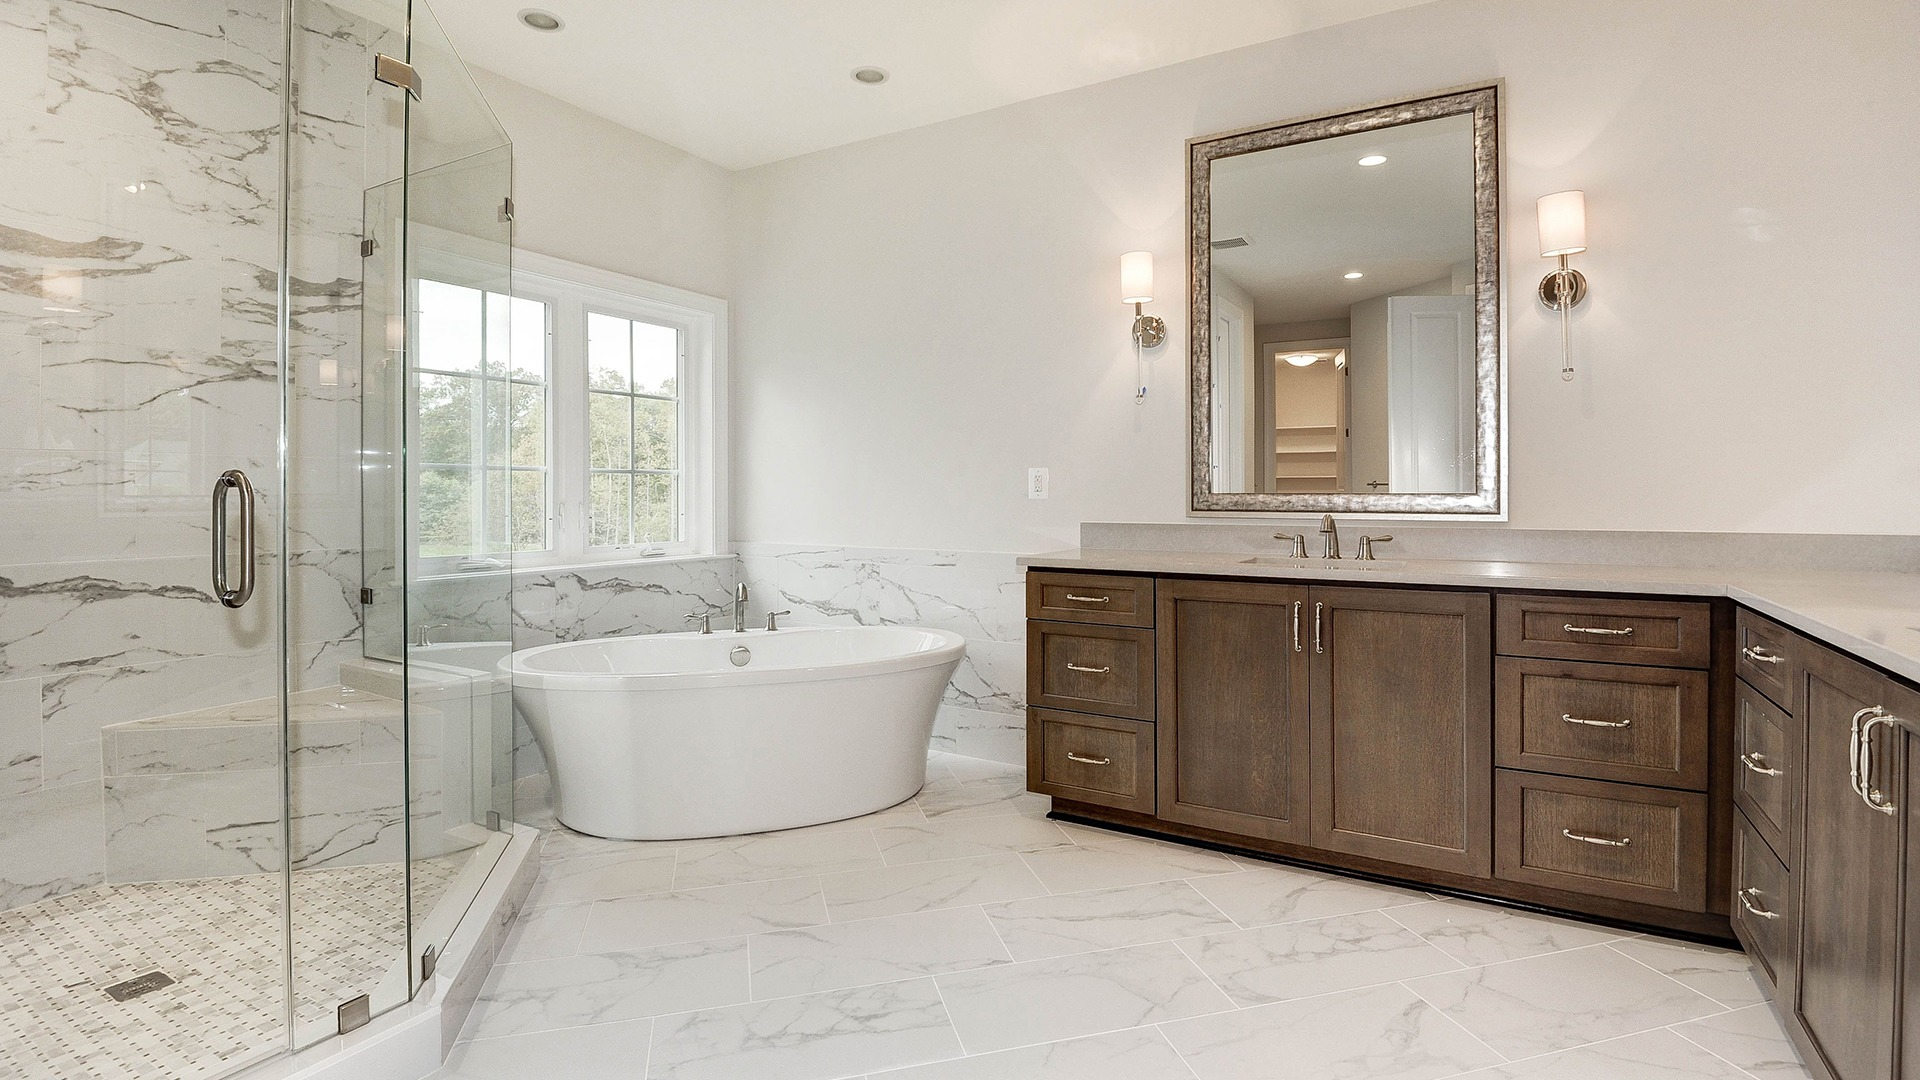 Luxury Owner's Bath with free-standing tub and frameless shower